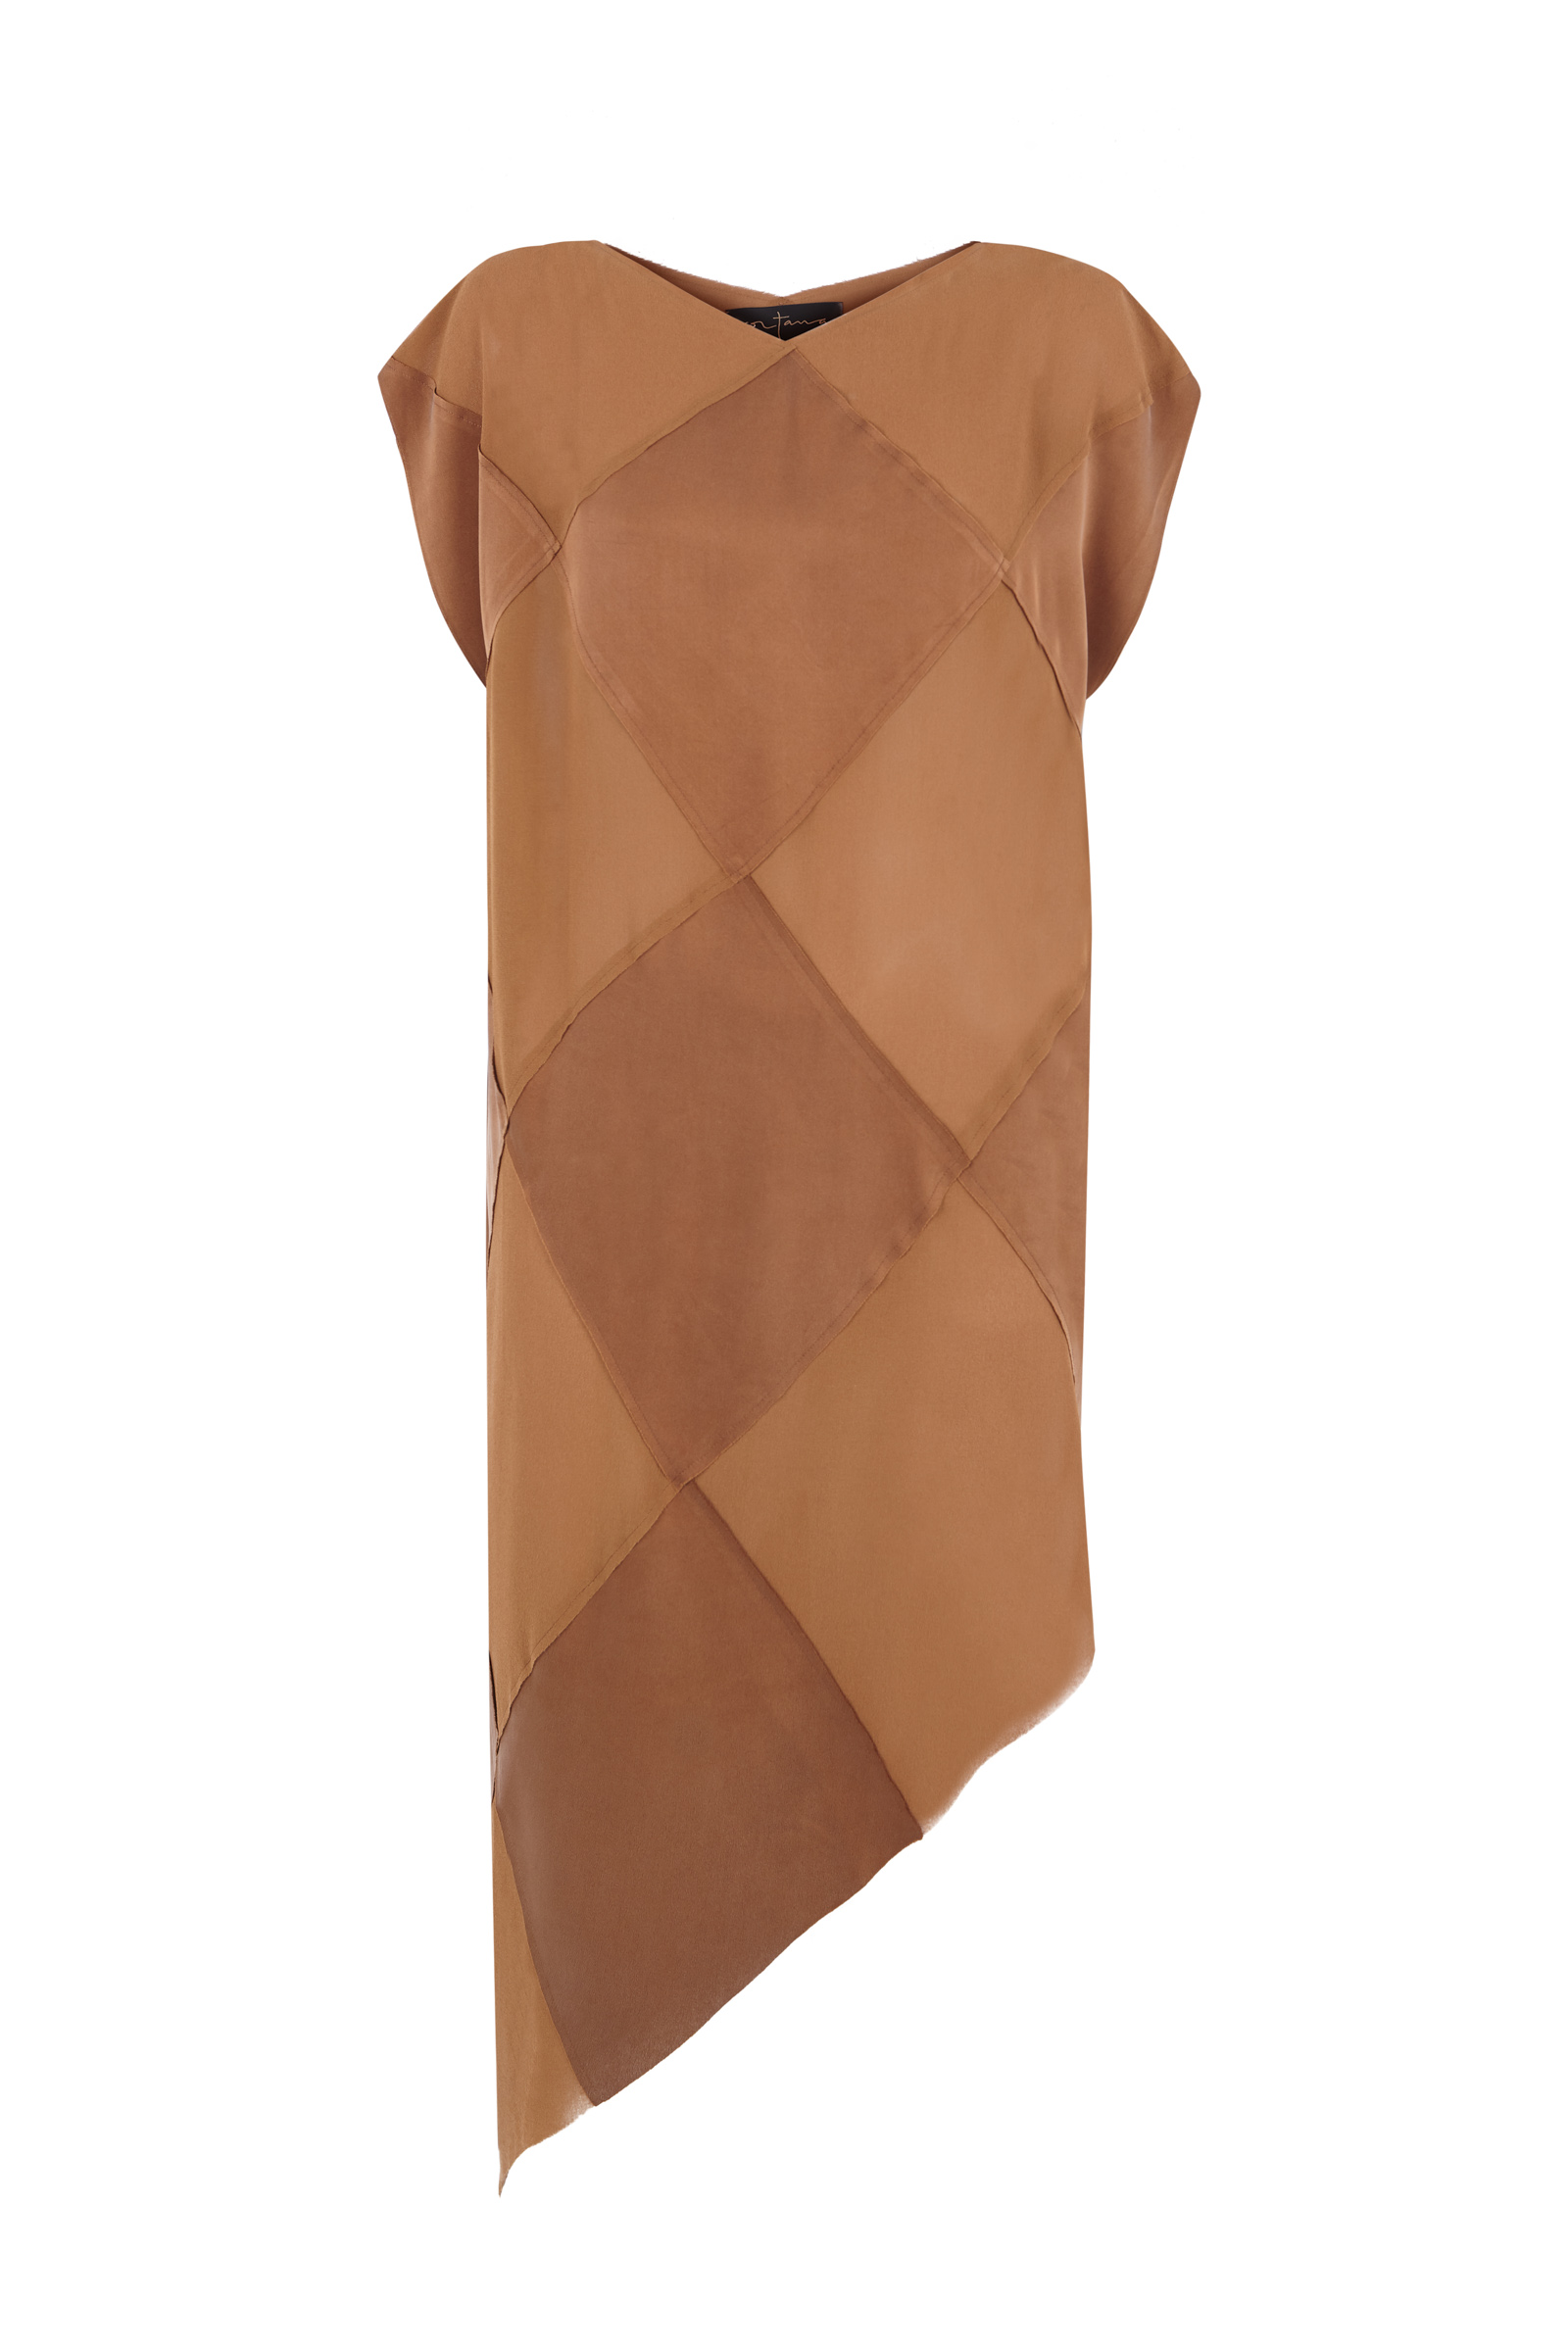 DIAMOND COPPER SILK DRESS - Cortana Moda